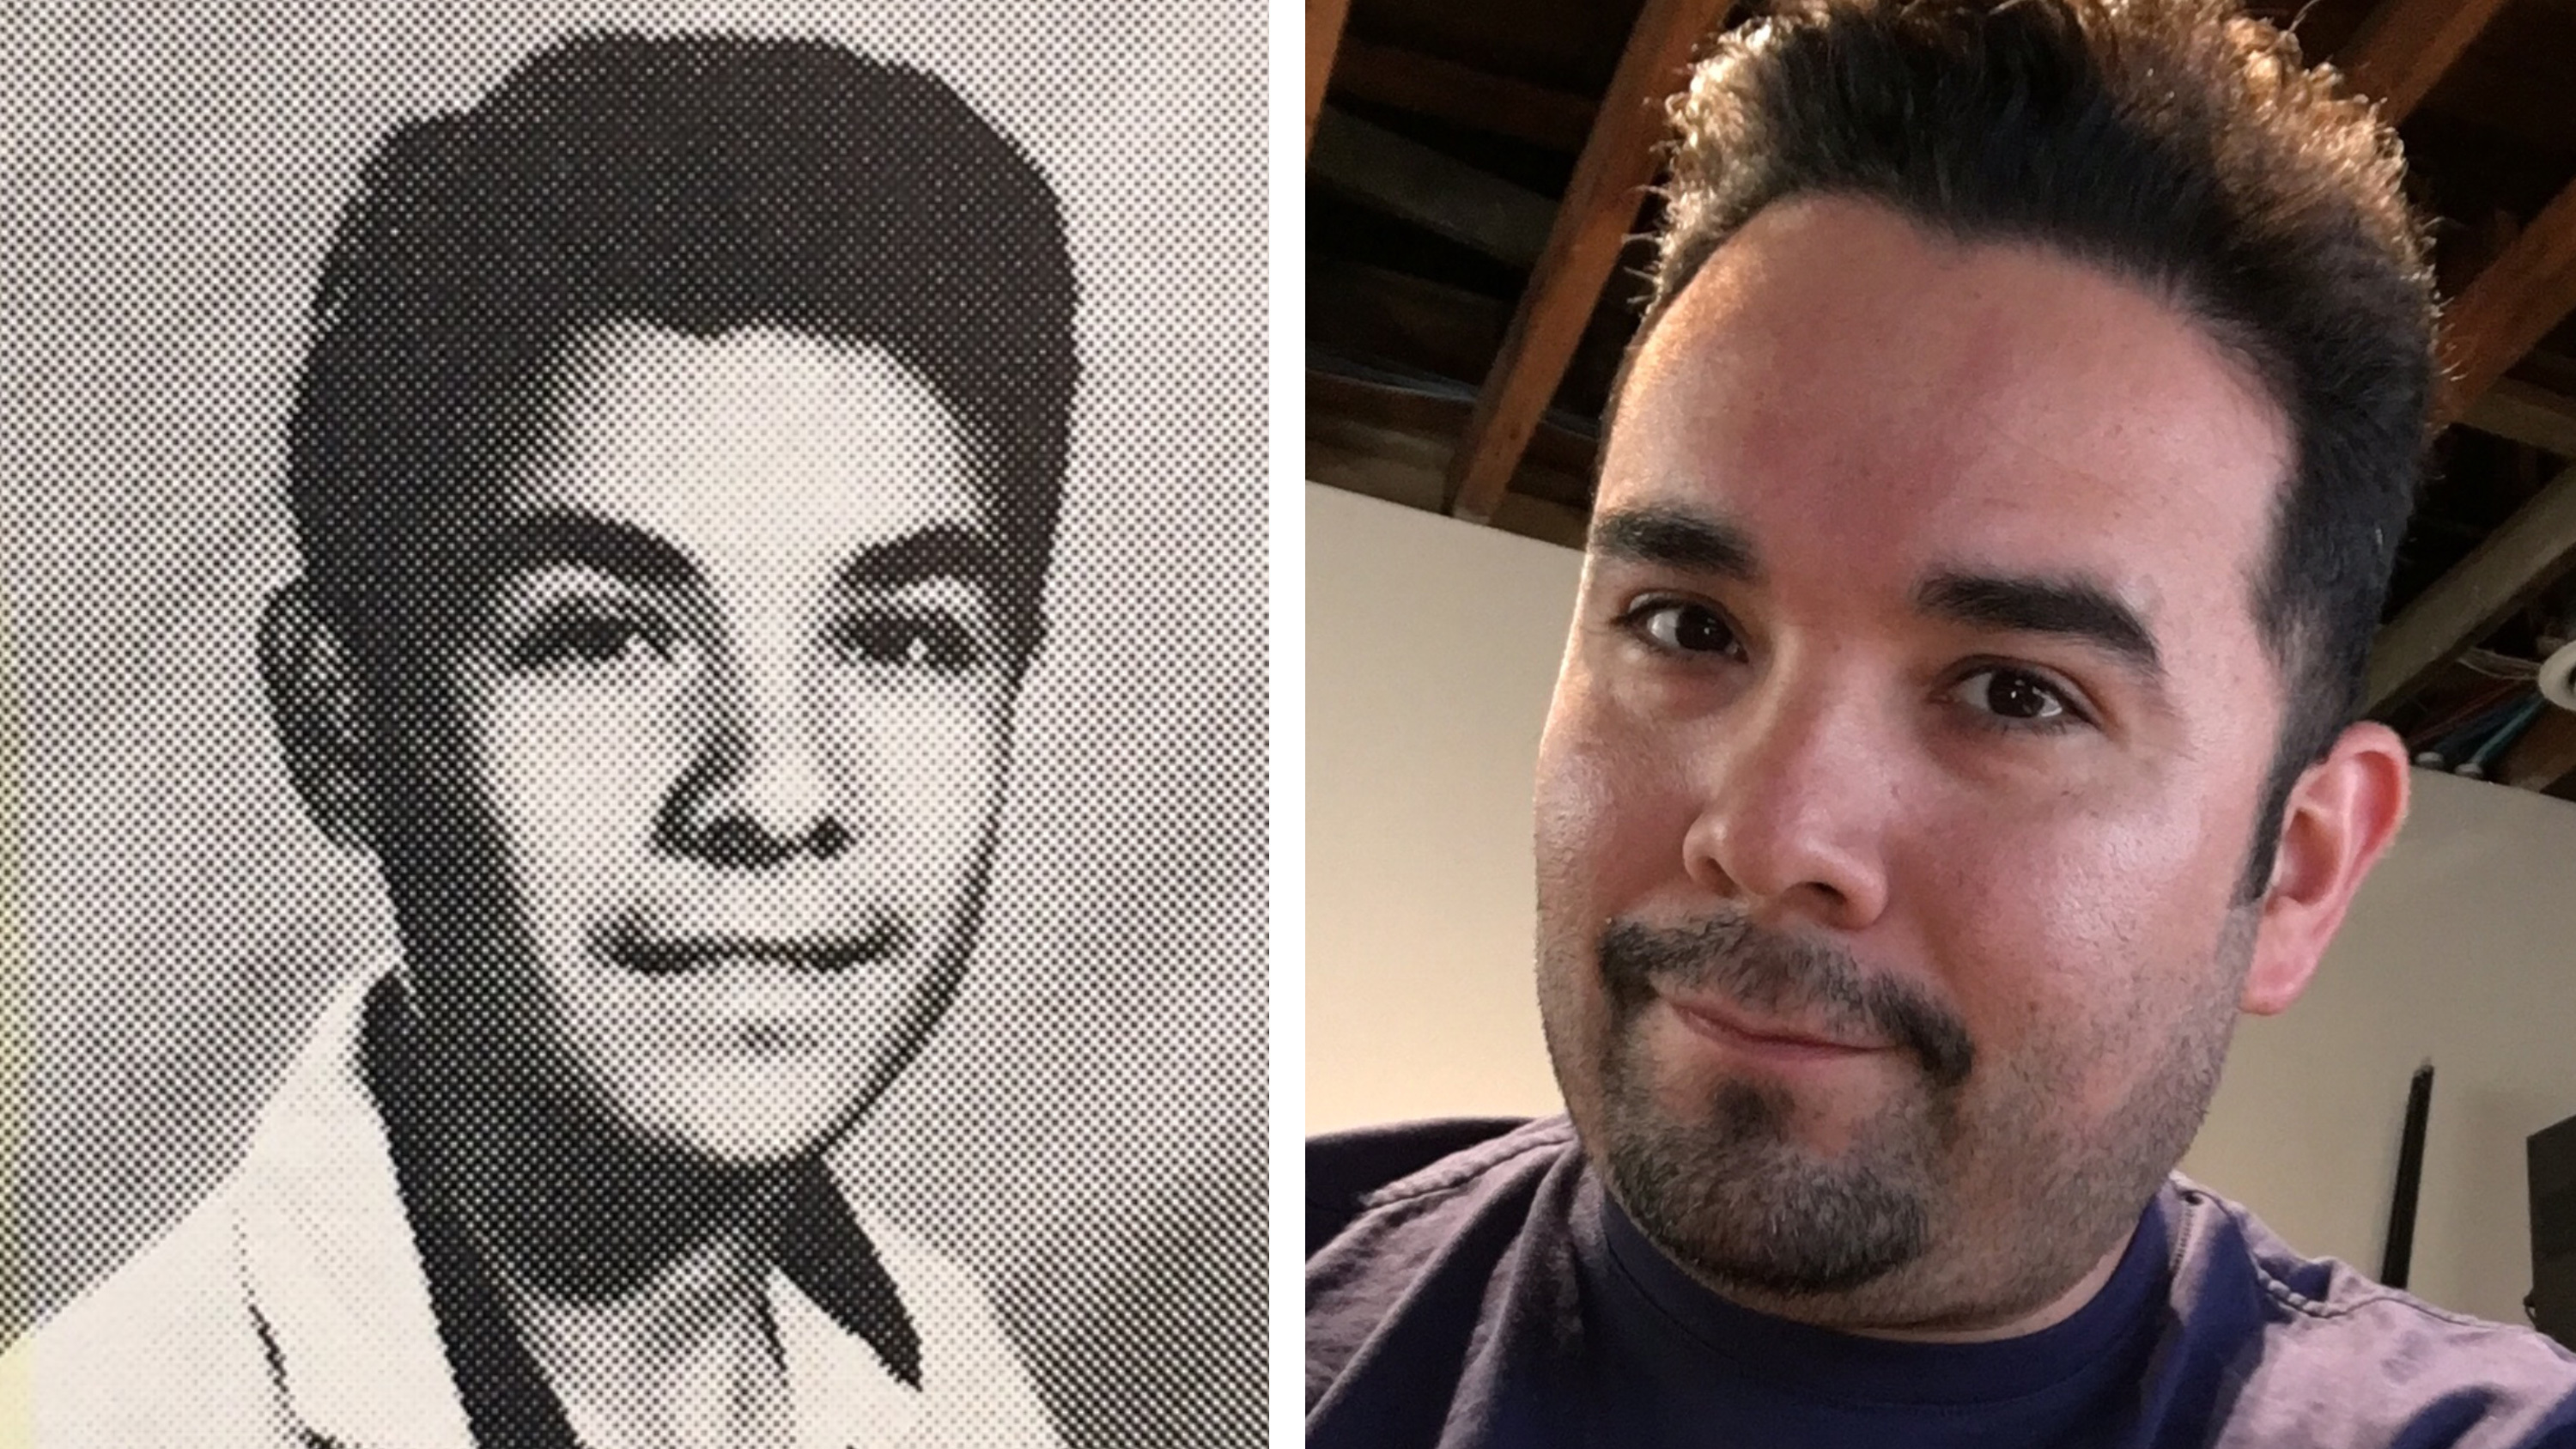 Gilbert Monterrosa was 15 years old (left, from his high school yearbook in 1992) during the Los Angeles Riots. He and some friends decided to loot a Fedco department store where he found something unexpected — Nirvana